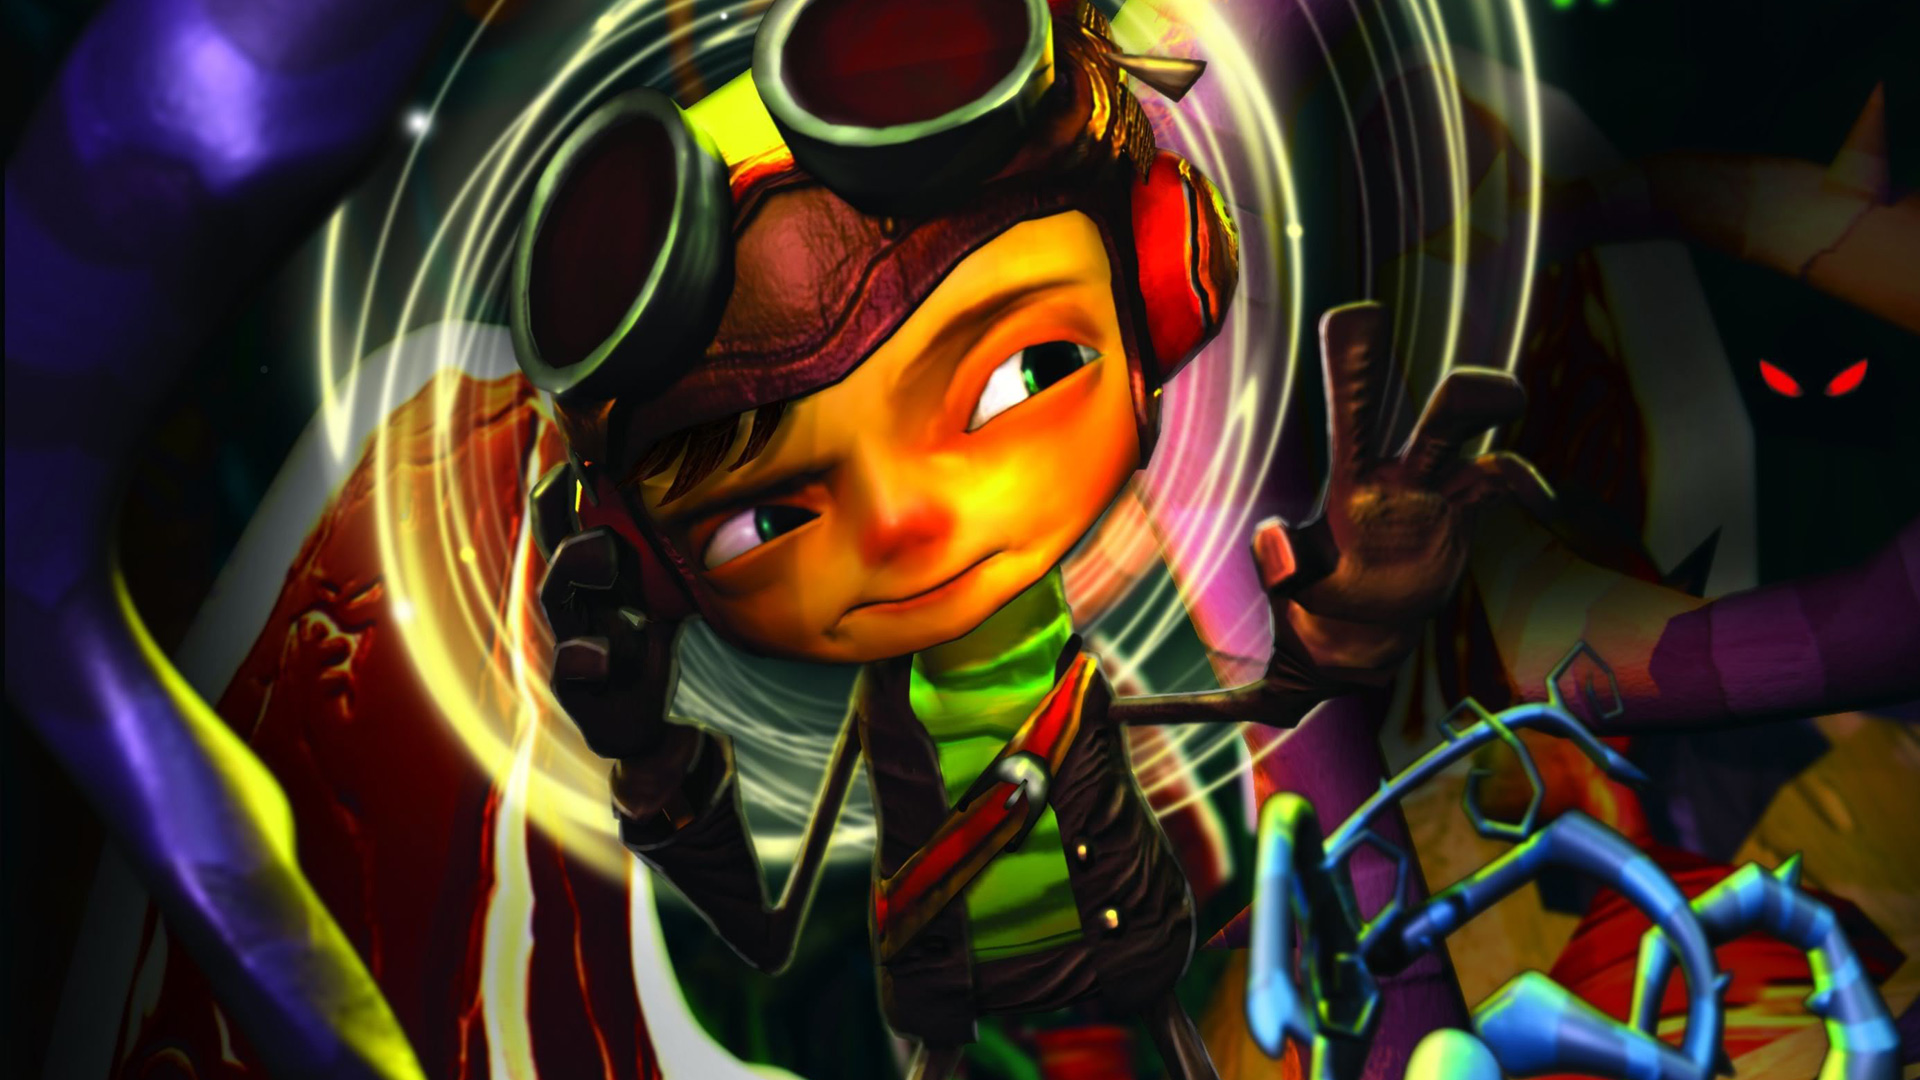 Free Psychonauts Wallpaper in 1920x1080